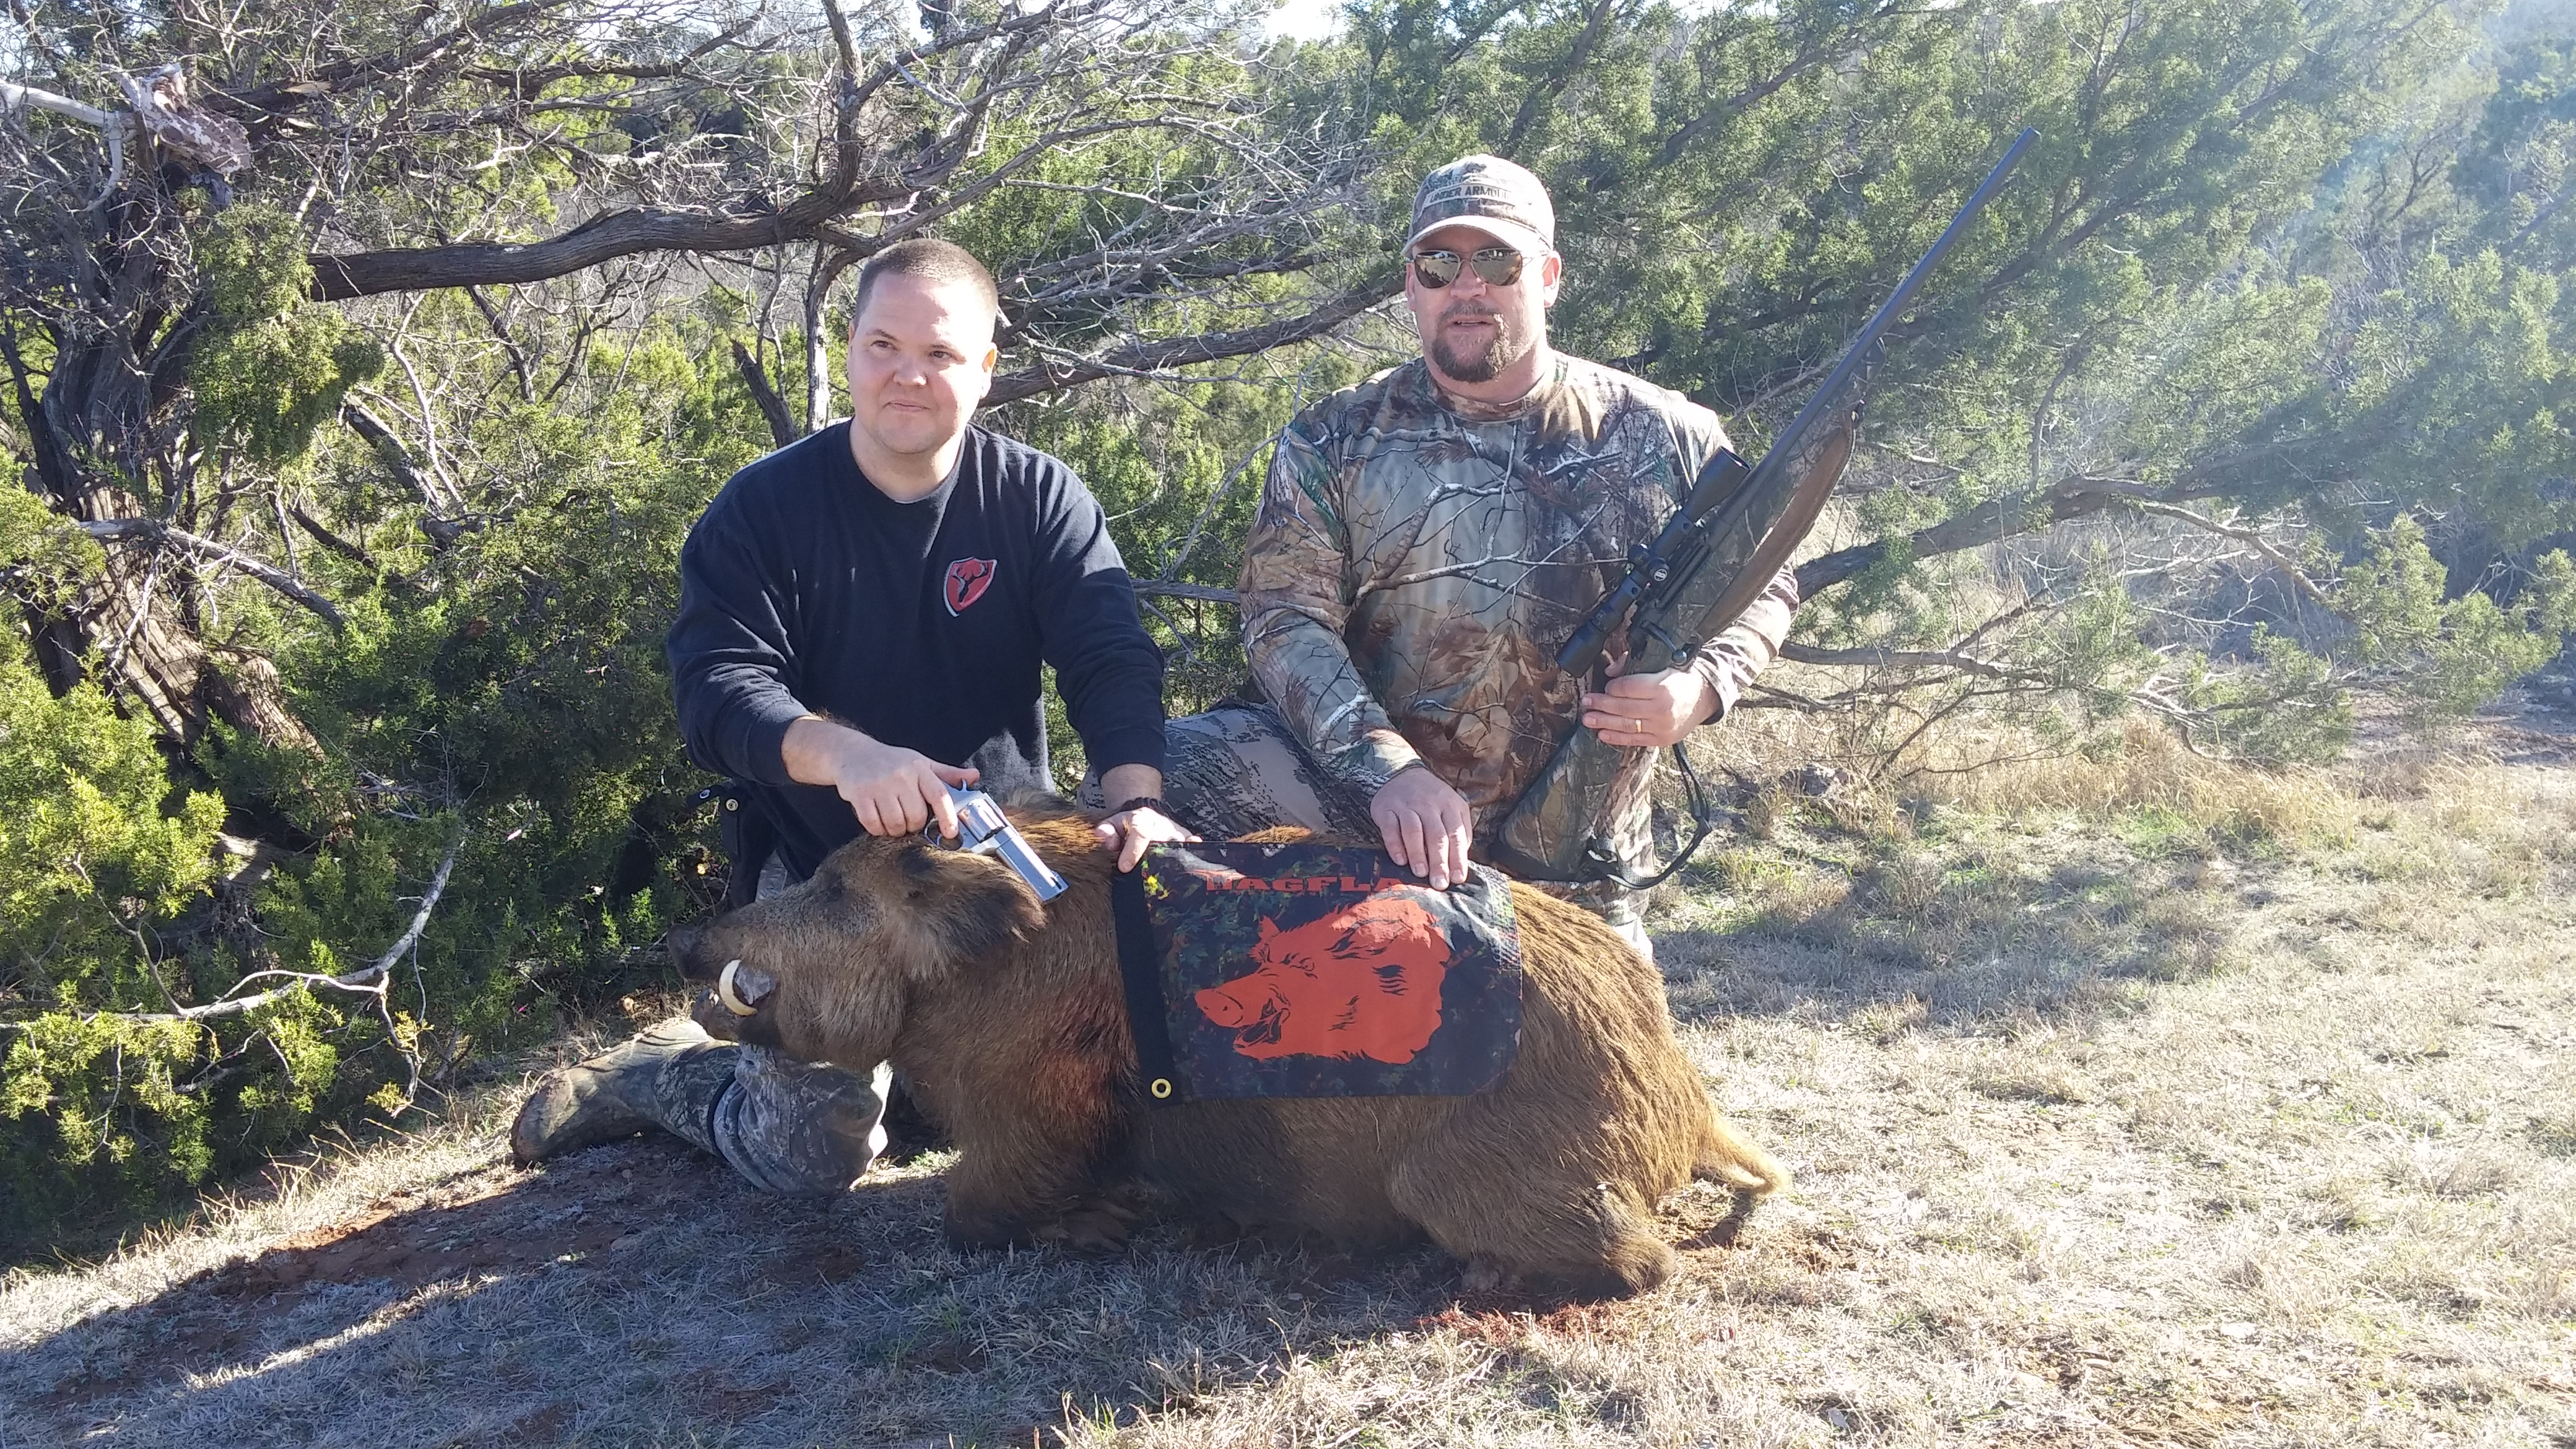 Trav and Nate with the toughest pig in Texas.